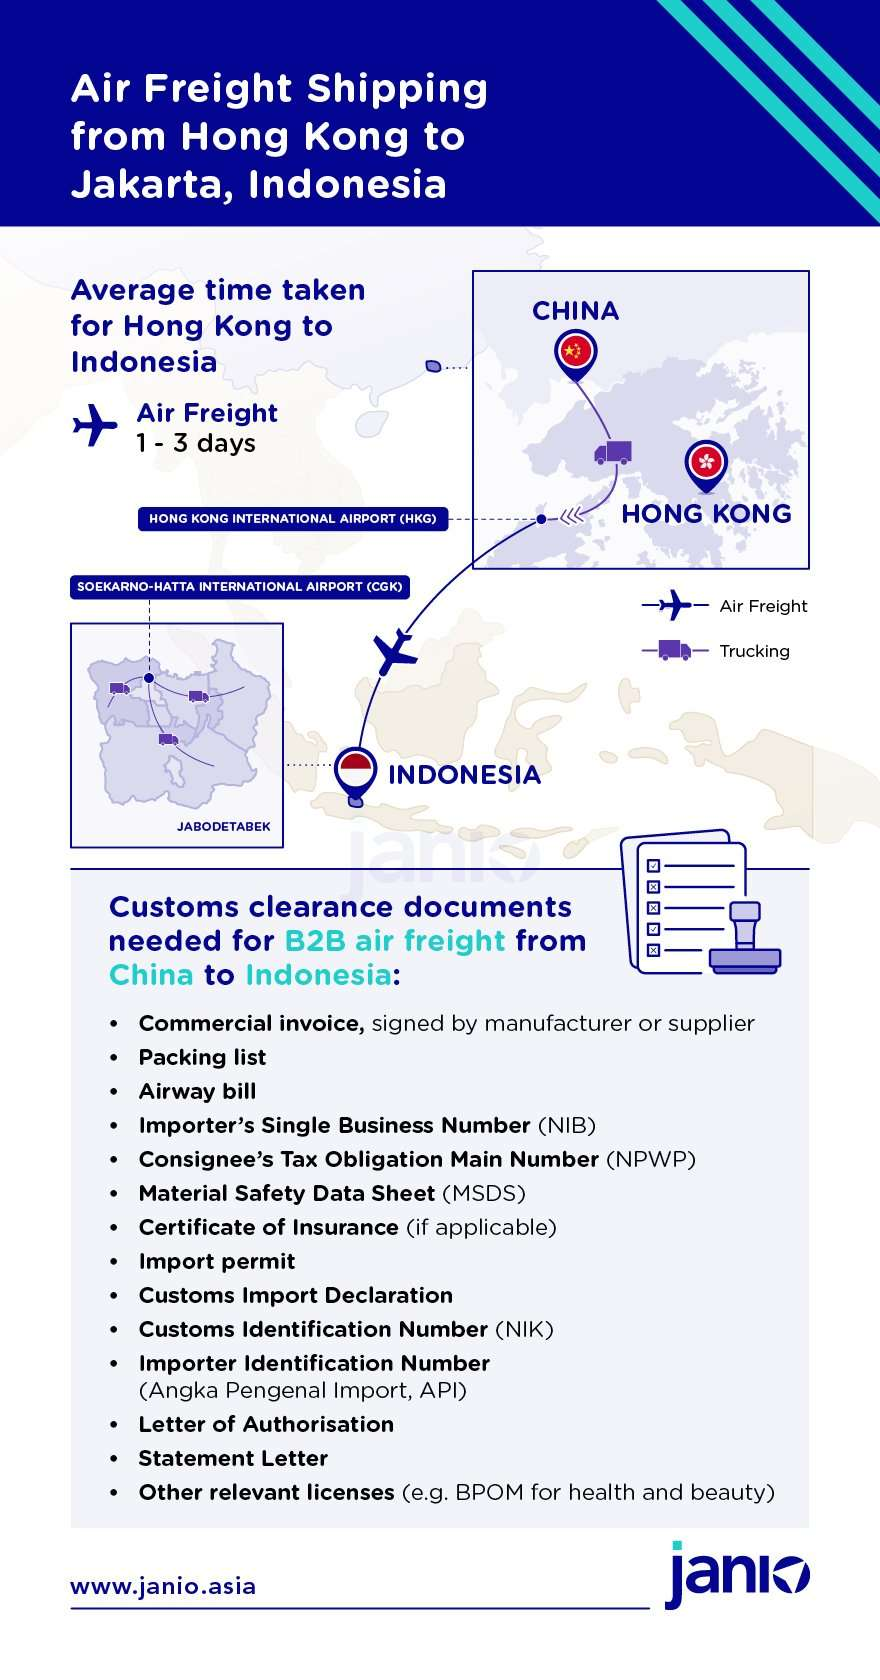 Infographic showing how air freight is done from Hong Kong to Indonesia. Also includes customs documents required for B2C shipments into Indonesia